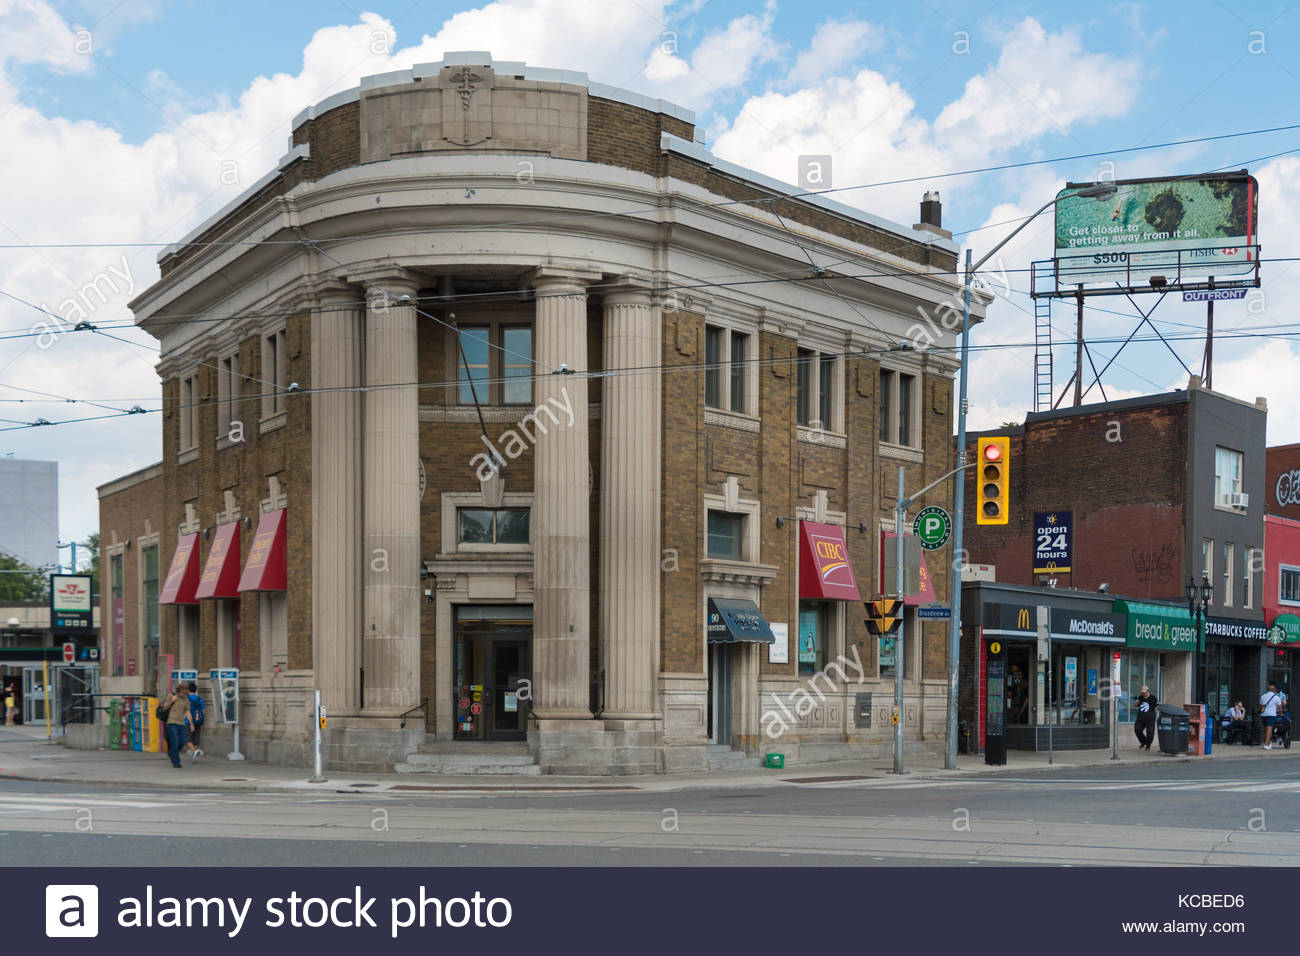 CIBC branch in old vintage building at Danforth and Broadview Avenues. The image has the traditional streetcars - Stock Image